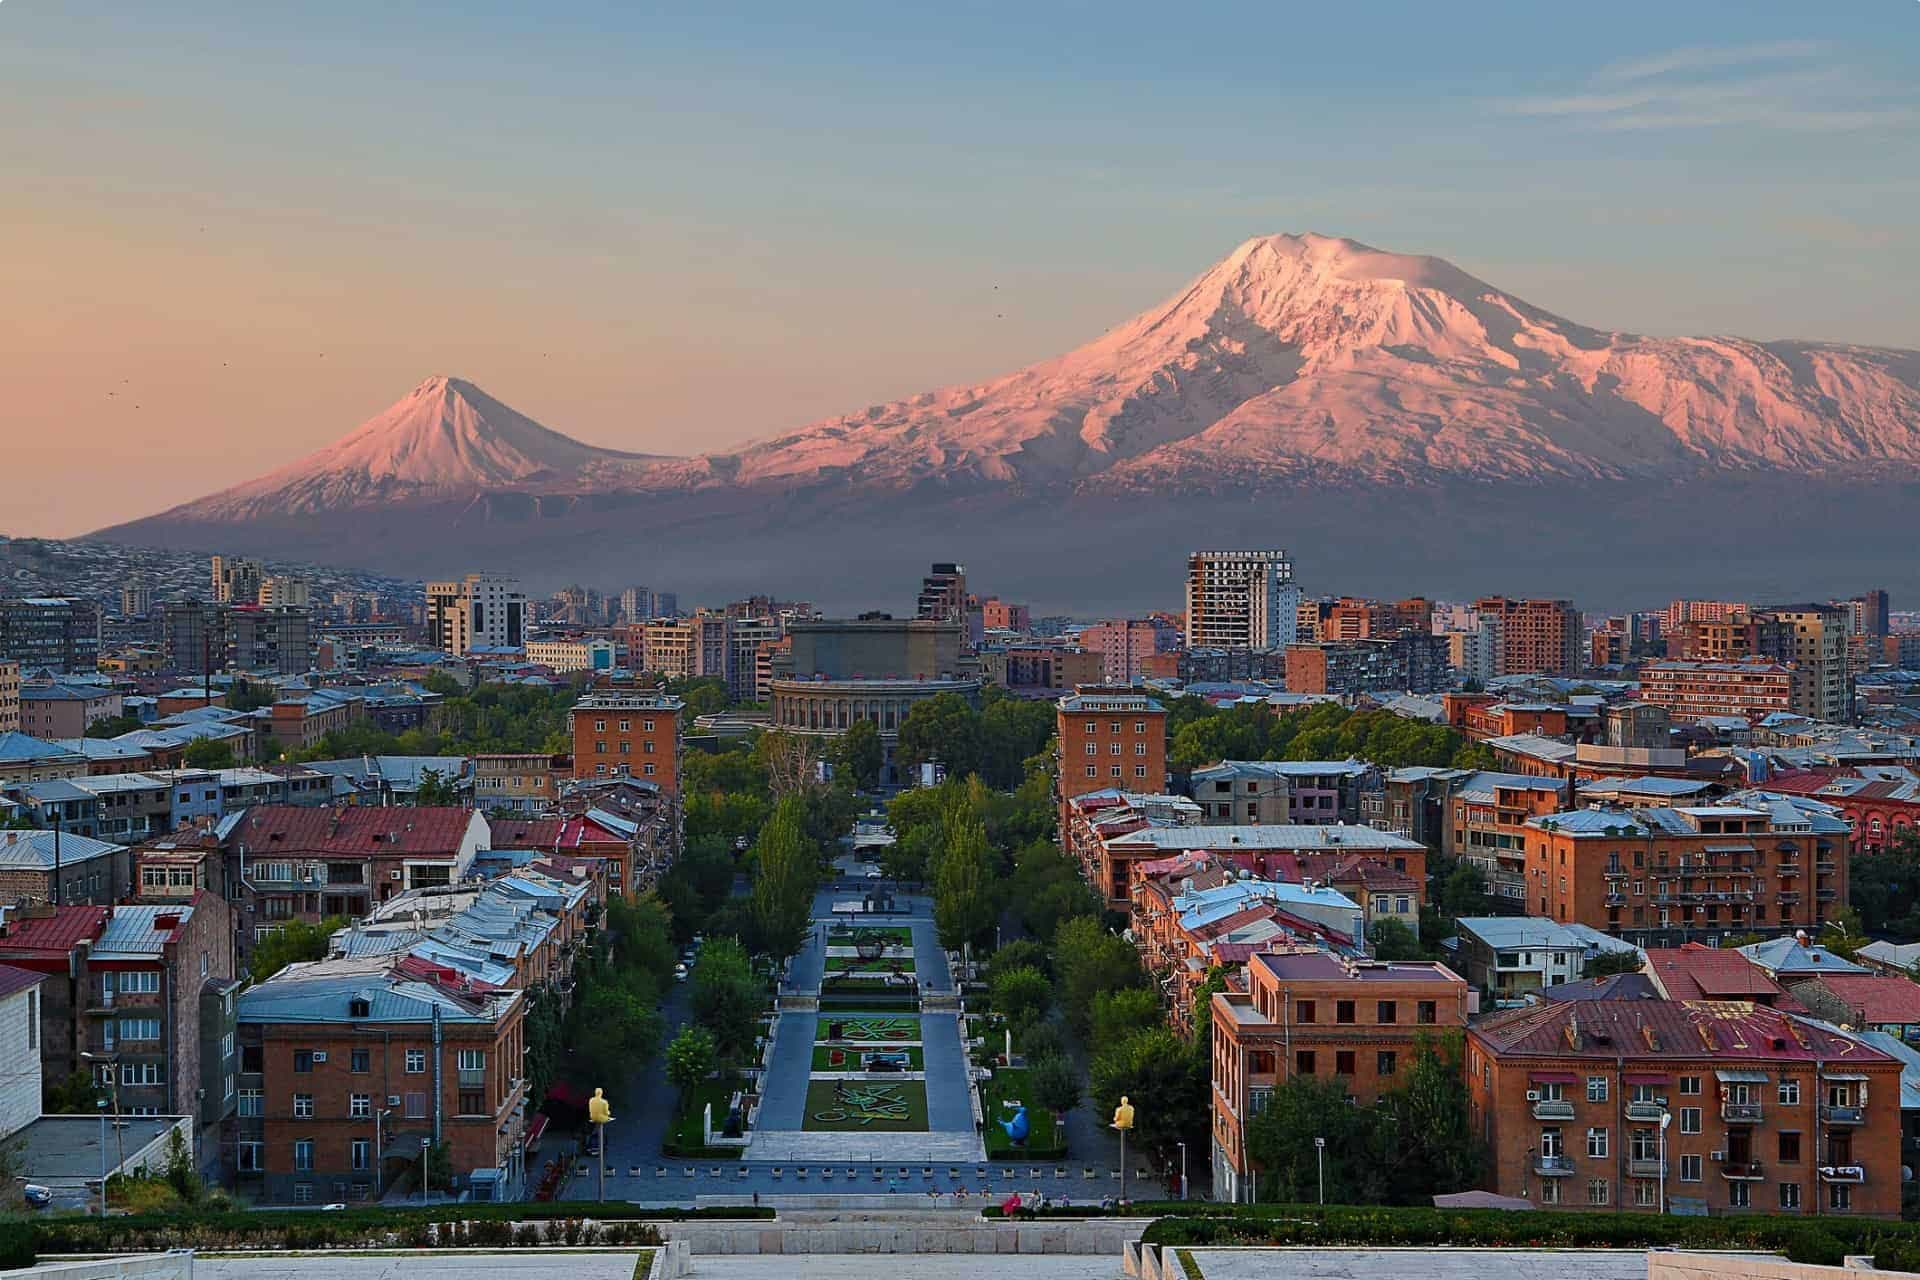 View over the city of Yerevan, capital of Armenia, with Mount Ararat in the background